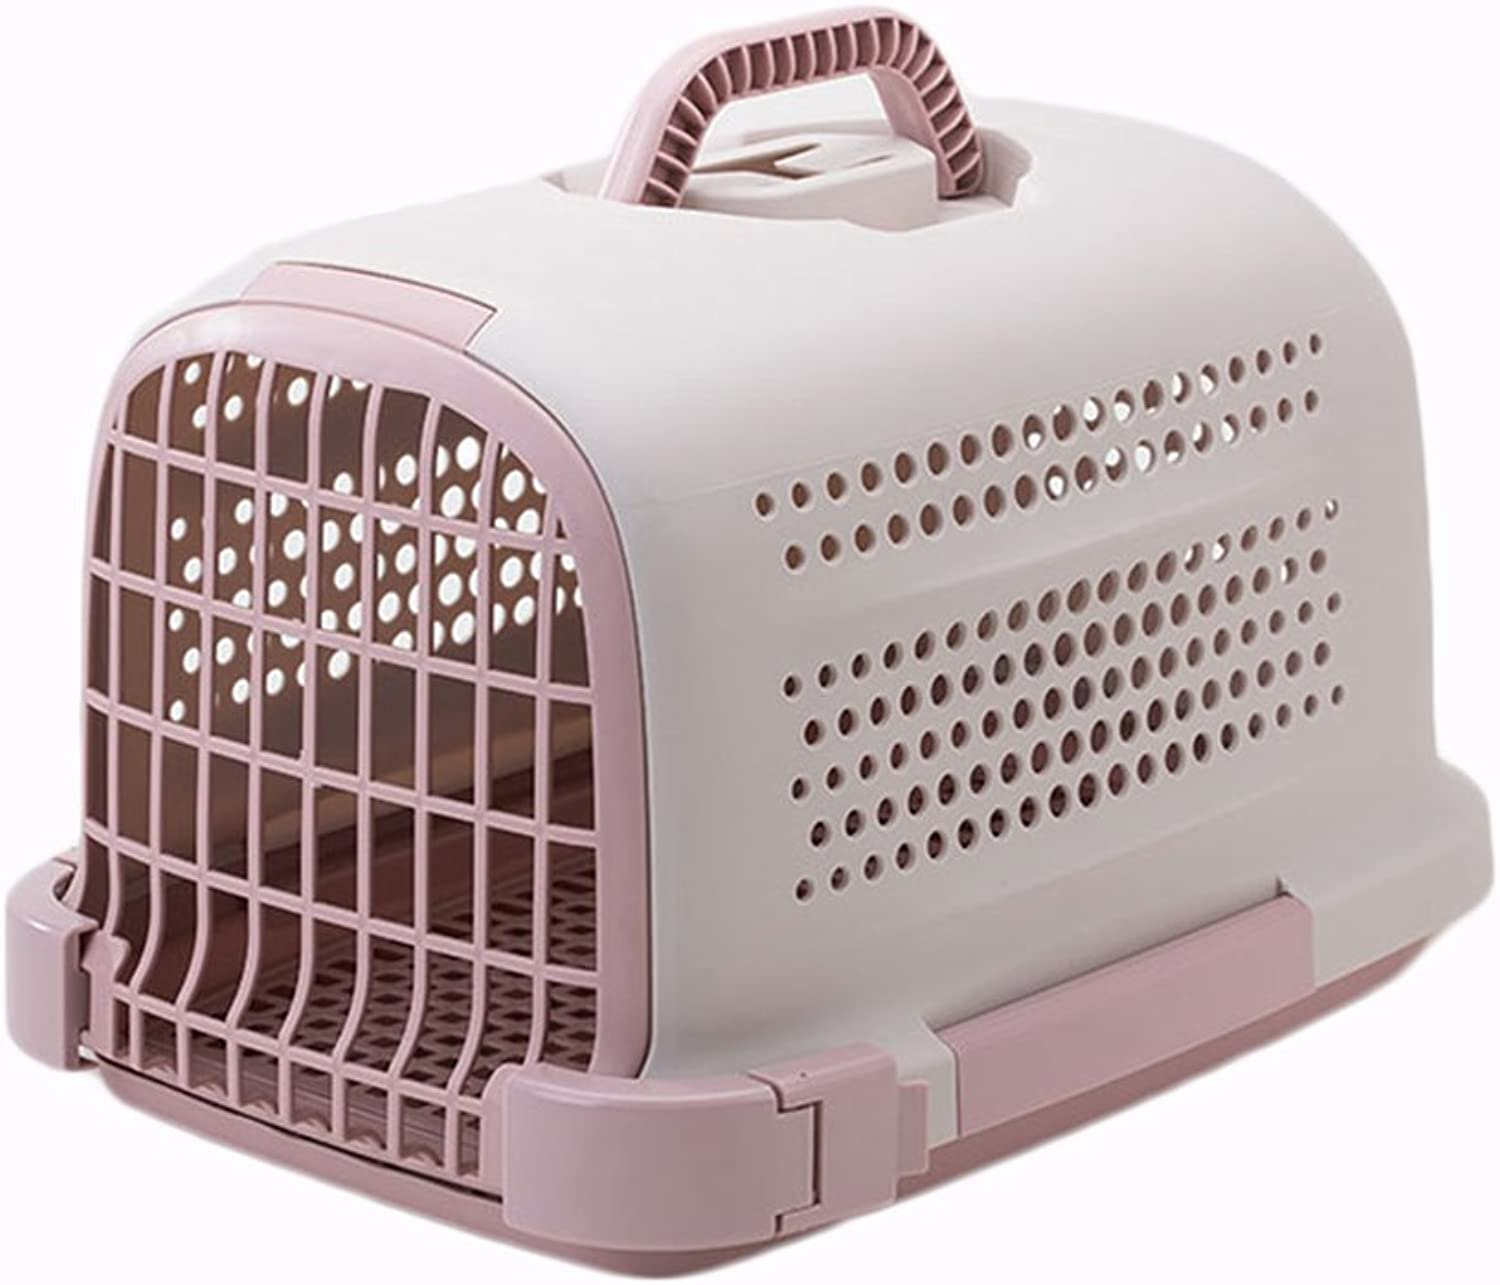 Pet Transport Boxes Cat Cages Outgoing Dog Boxes Airlifts Pet Backpacks (color   Pink)